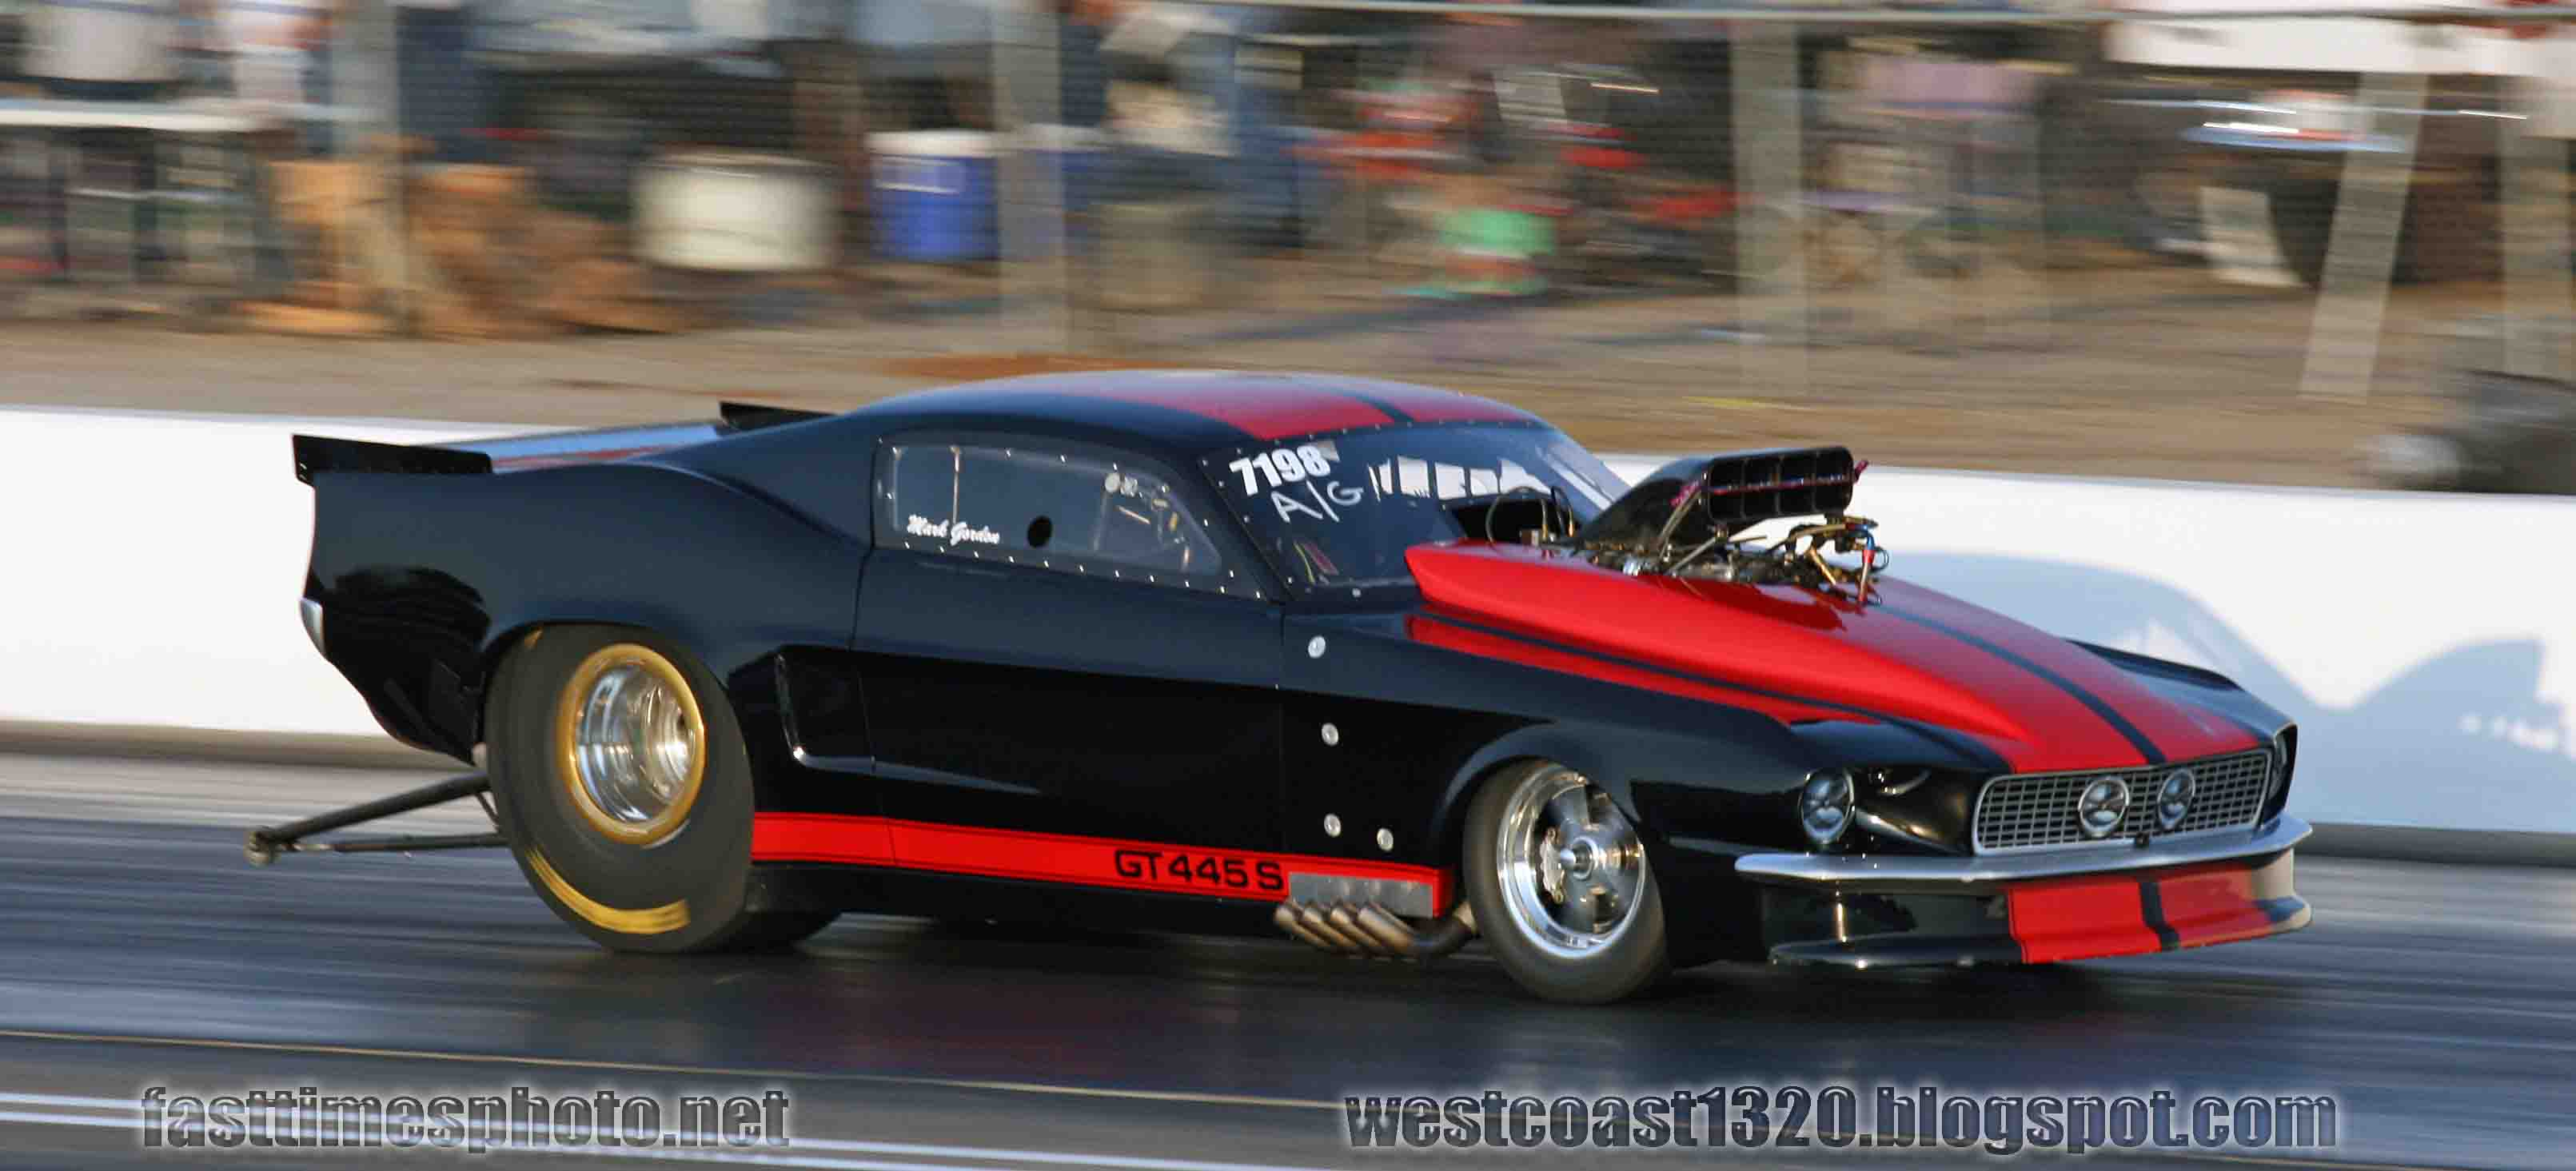 drag racing race hot rod rods funnycar funny r wallpaper 3222x1465 138032 wallpaperup. Black Bedroom Furniture Sets. Home Design Ideas